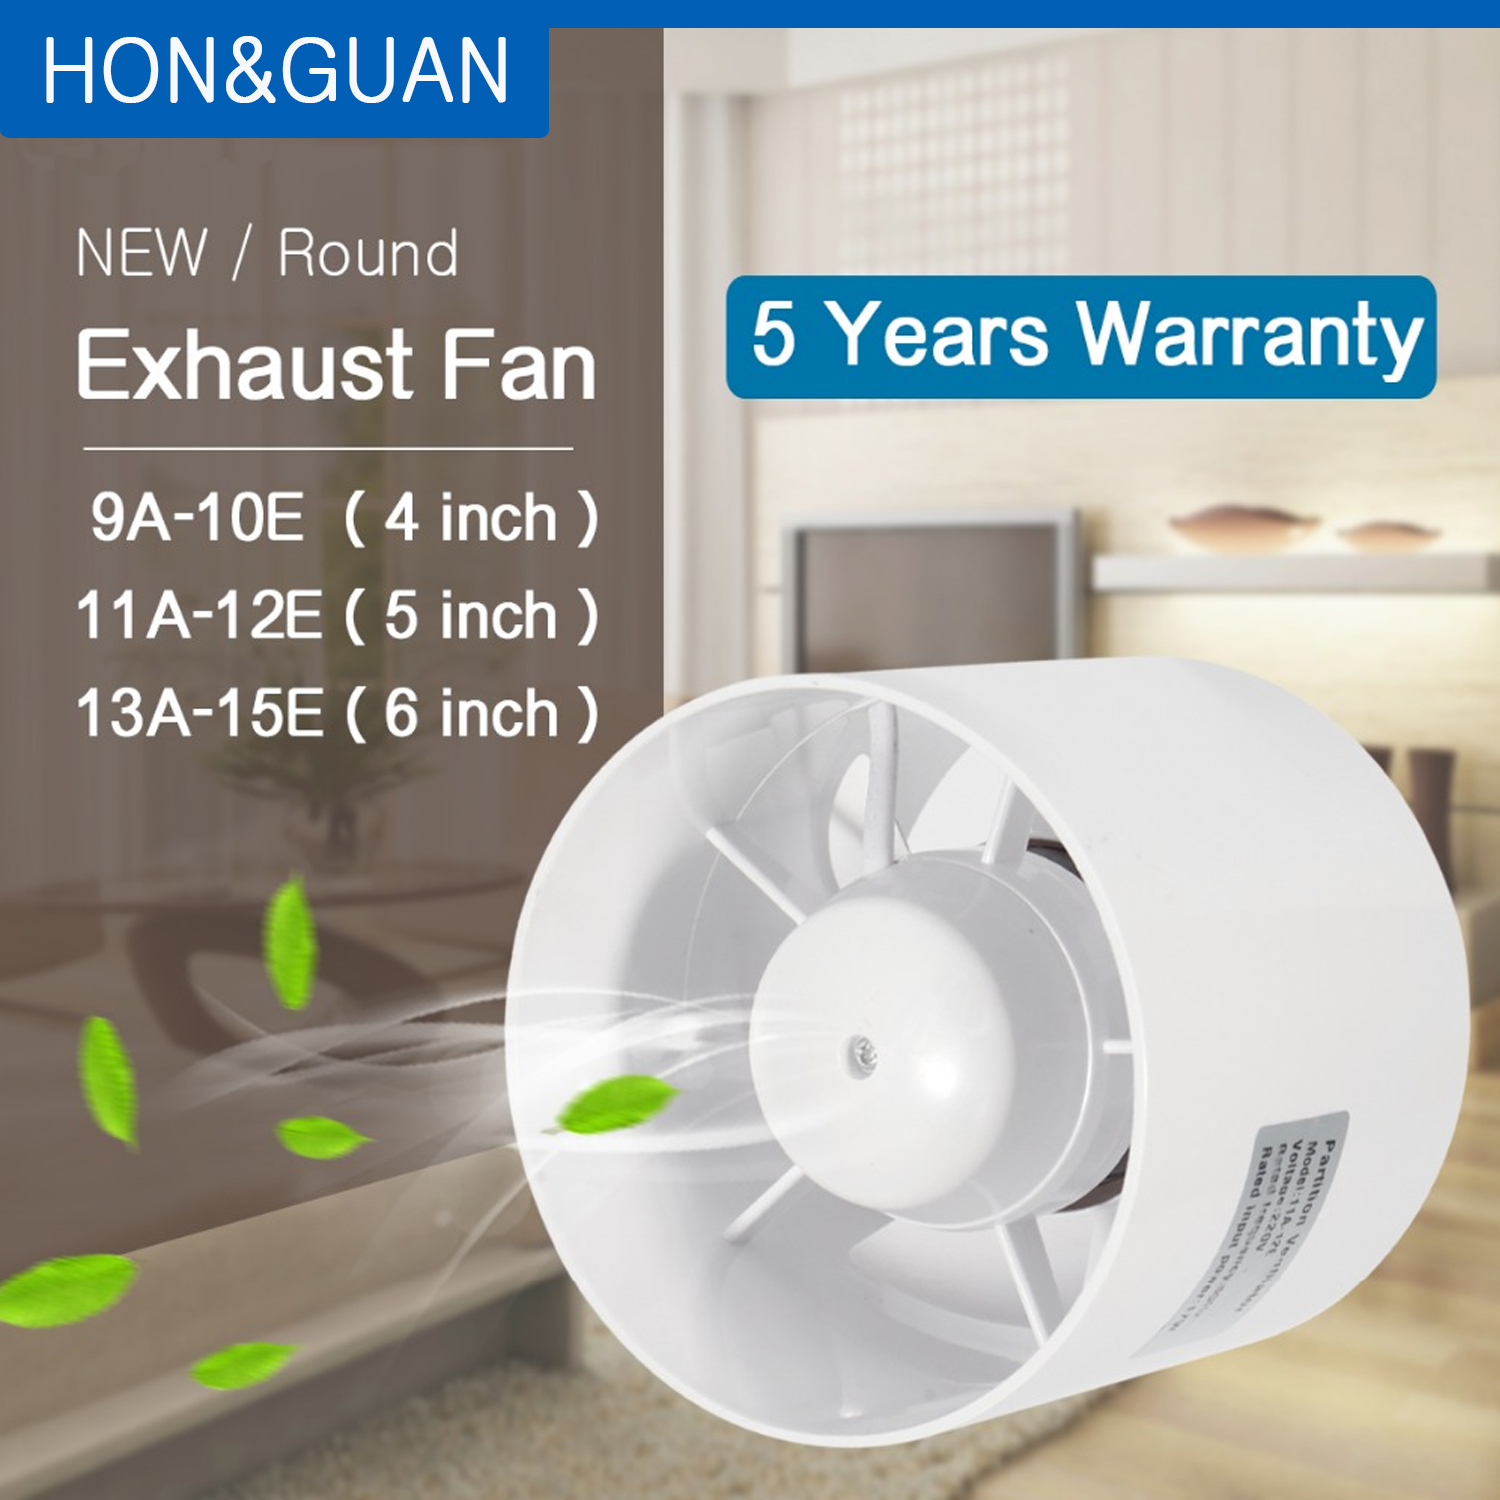 ABS Round Duct Fan Booster Exhaust Ventilator Ventilation Vent Air 4'' 5'' 6'' For Window Wall Bathroom Toilet Kitchen 220V 110V